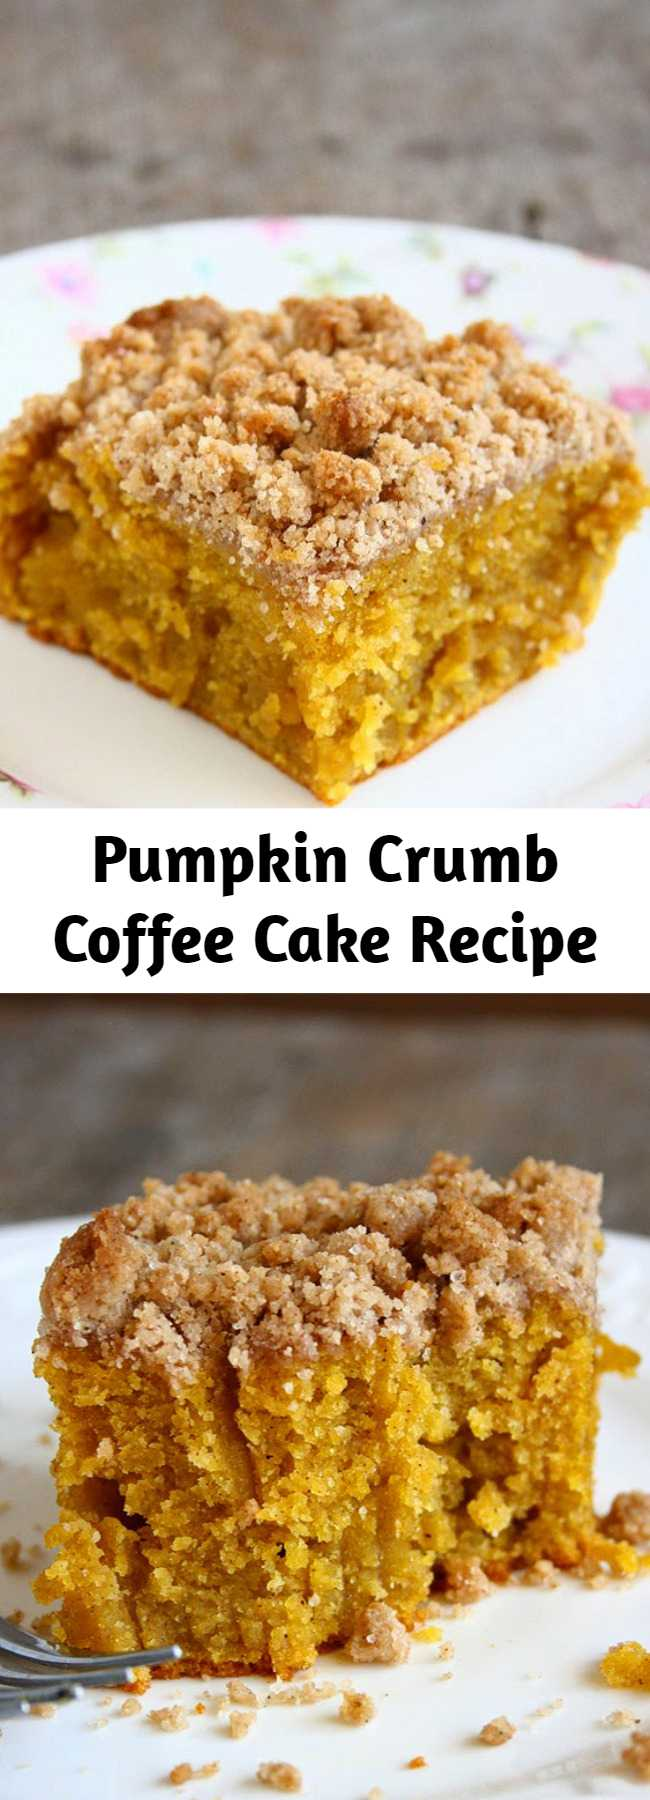 Pumpkin Crumb Coffee Cake Recipe - This was the moistest coffee cake EVER. I even wasn't sure if I can call this a coffee cake. This is insanely moist. And It keeps moist for days. It wasn't too sweet, too spicy, too dry, too moist. It had a perfect texture and a sweet, crunchy crumb topping. What else could you want??